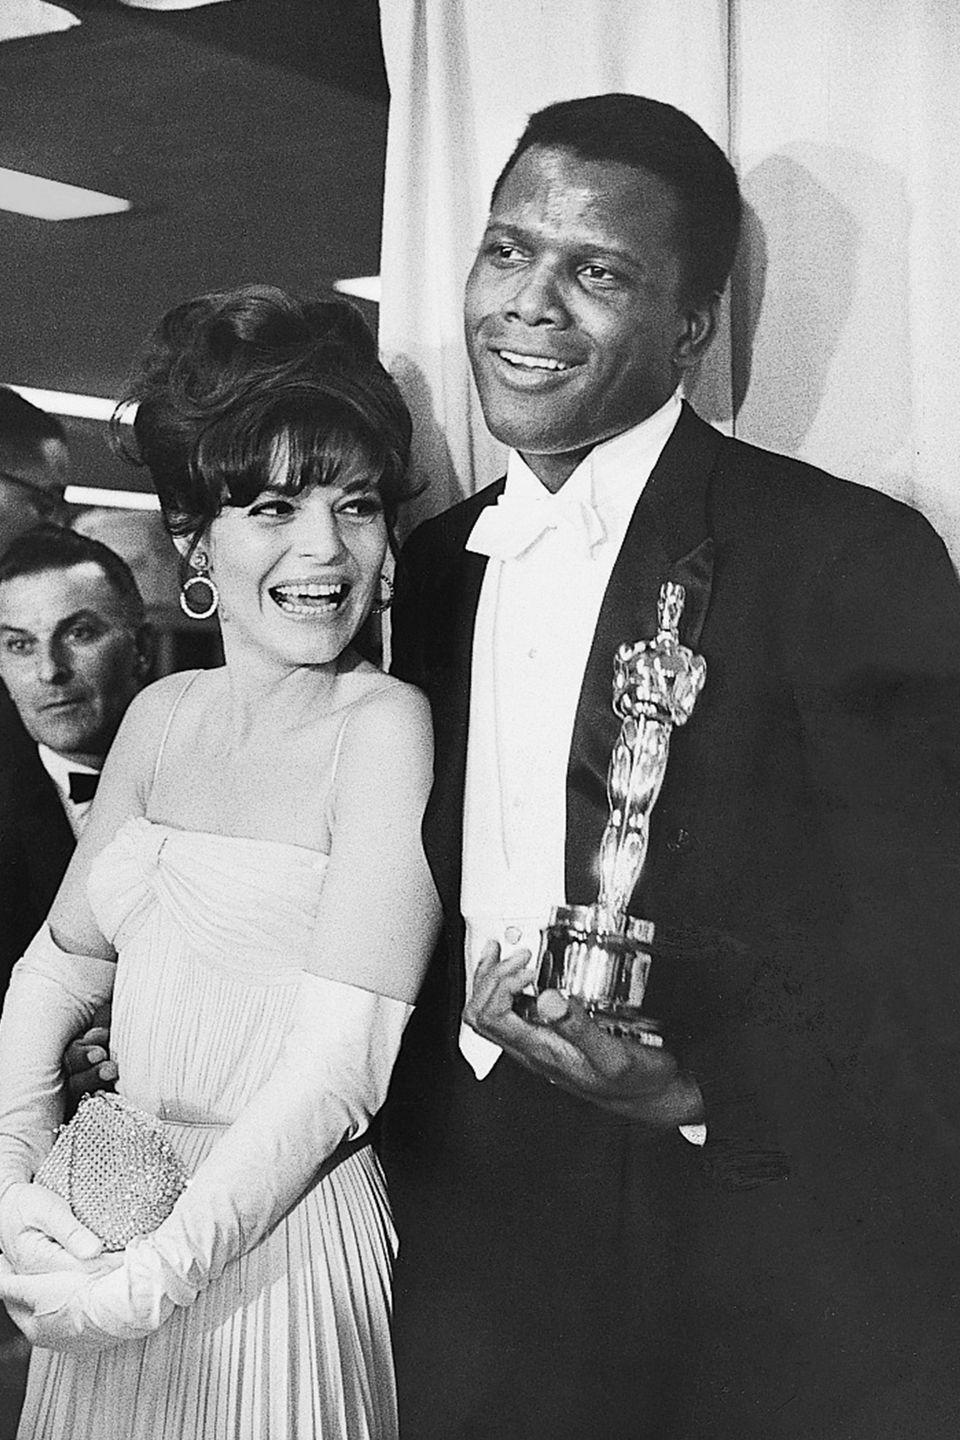 """<p><a href=""""http://www.history.com/this-day-in-history/sidney-poitier-wins-best-actor-oscar-for-lilies-of-the-field"""" rel=""""nofollow noopener"""" target=""""_blank"""" data-ylk=""""slk:Sidney Poitier made history"""" class=""""link rapid-noclick-resp"""">Sidney Poitier made history</a> when he became the first black man to win the award for Best Actor, thanks to his performance in <em><a href=""""https://www.amazon.com/dp/B000IZ8V9O?ref=sr_1_1_acs_kn_imdb_pa_dp&qid=1547582524&sr=1-1-acs&autoplay=0&tag=syn-yahoo-20&ascsubtag=%5Bartid%7C10055.g.5148%5Bsrc%7Cyahoo-us"""" rel=""""nofollow noopener"""" target=""""_blank"""" data-ylk=""""slk:Lilies of the Field"""" class=""""link rapid-noclick-resp"""">Lilies of the Field</a></em><span class=""""redactor-invisible-space"""">. Actress Ann Bancroft congratulated him with a kiss on the cheek, which conservative audiences at the time found scandalous. </span></p>"""